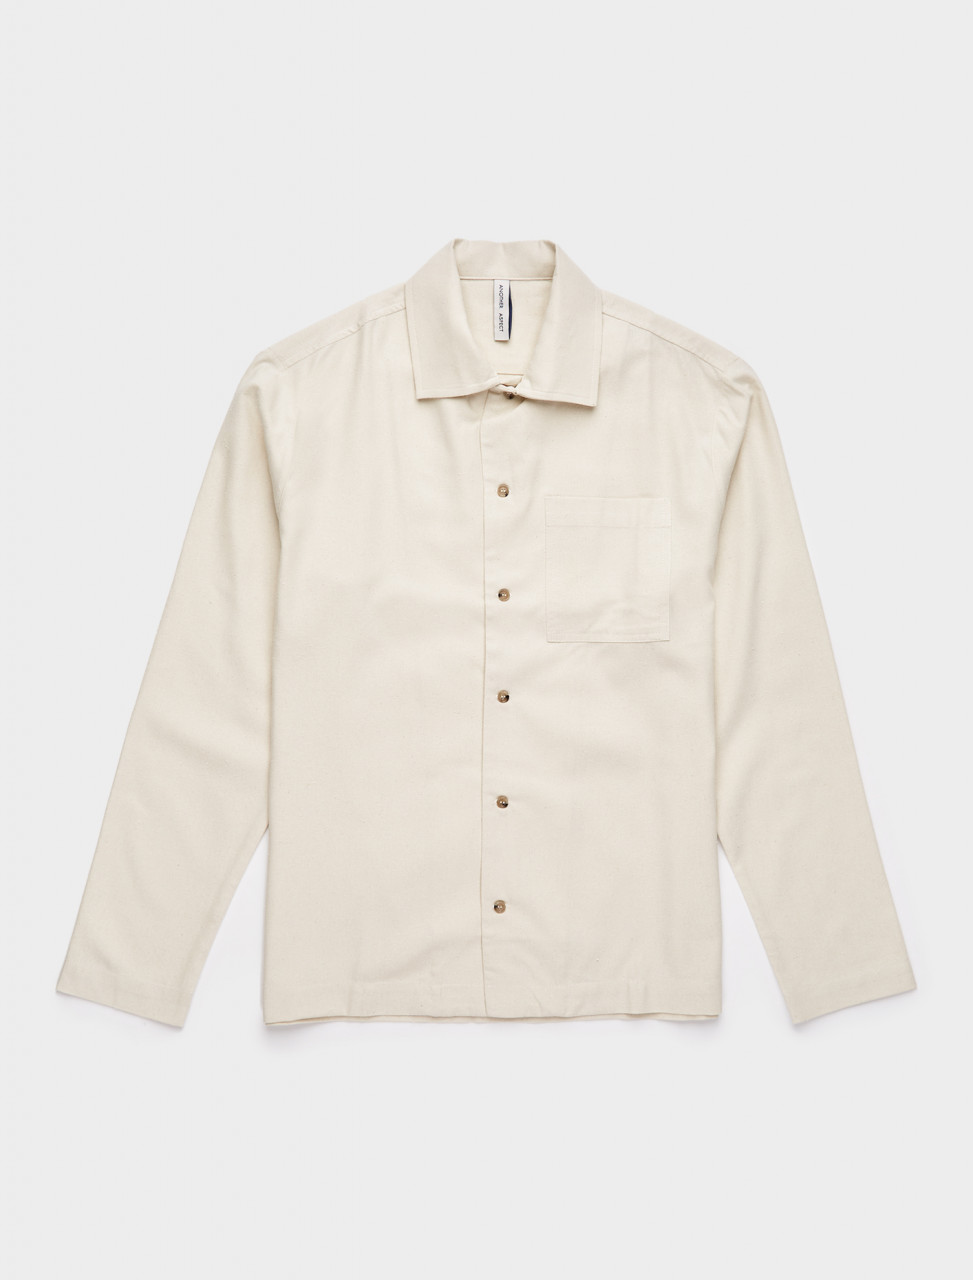 344-123459-004 ANOTHER ASPECT ANOTHER SHIRT 2.1 NATURAL